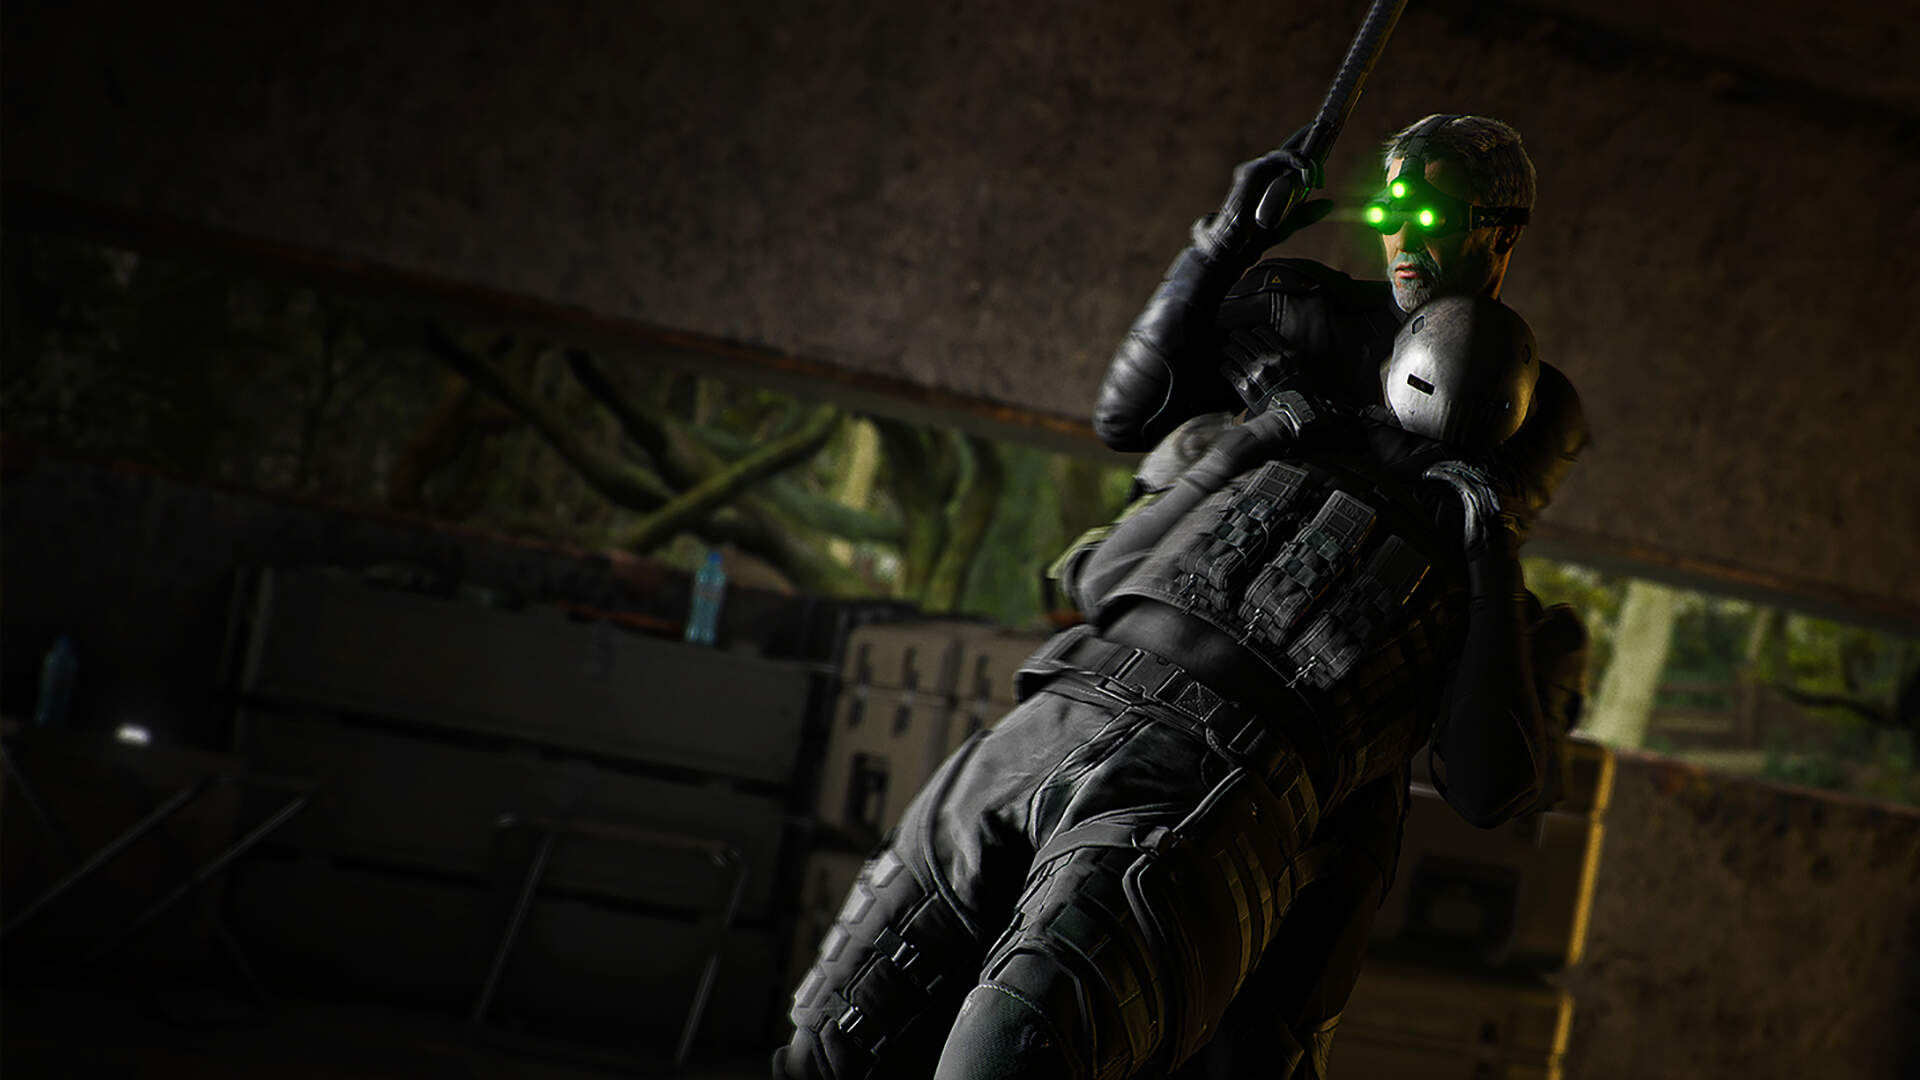 Ghost Recon Breakpoint Lets You Hang Out With Sam Fisher in Today's Big Overhaul